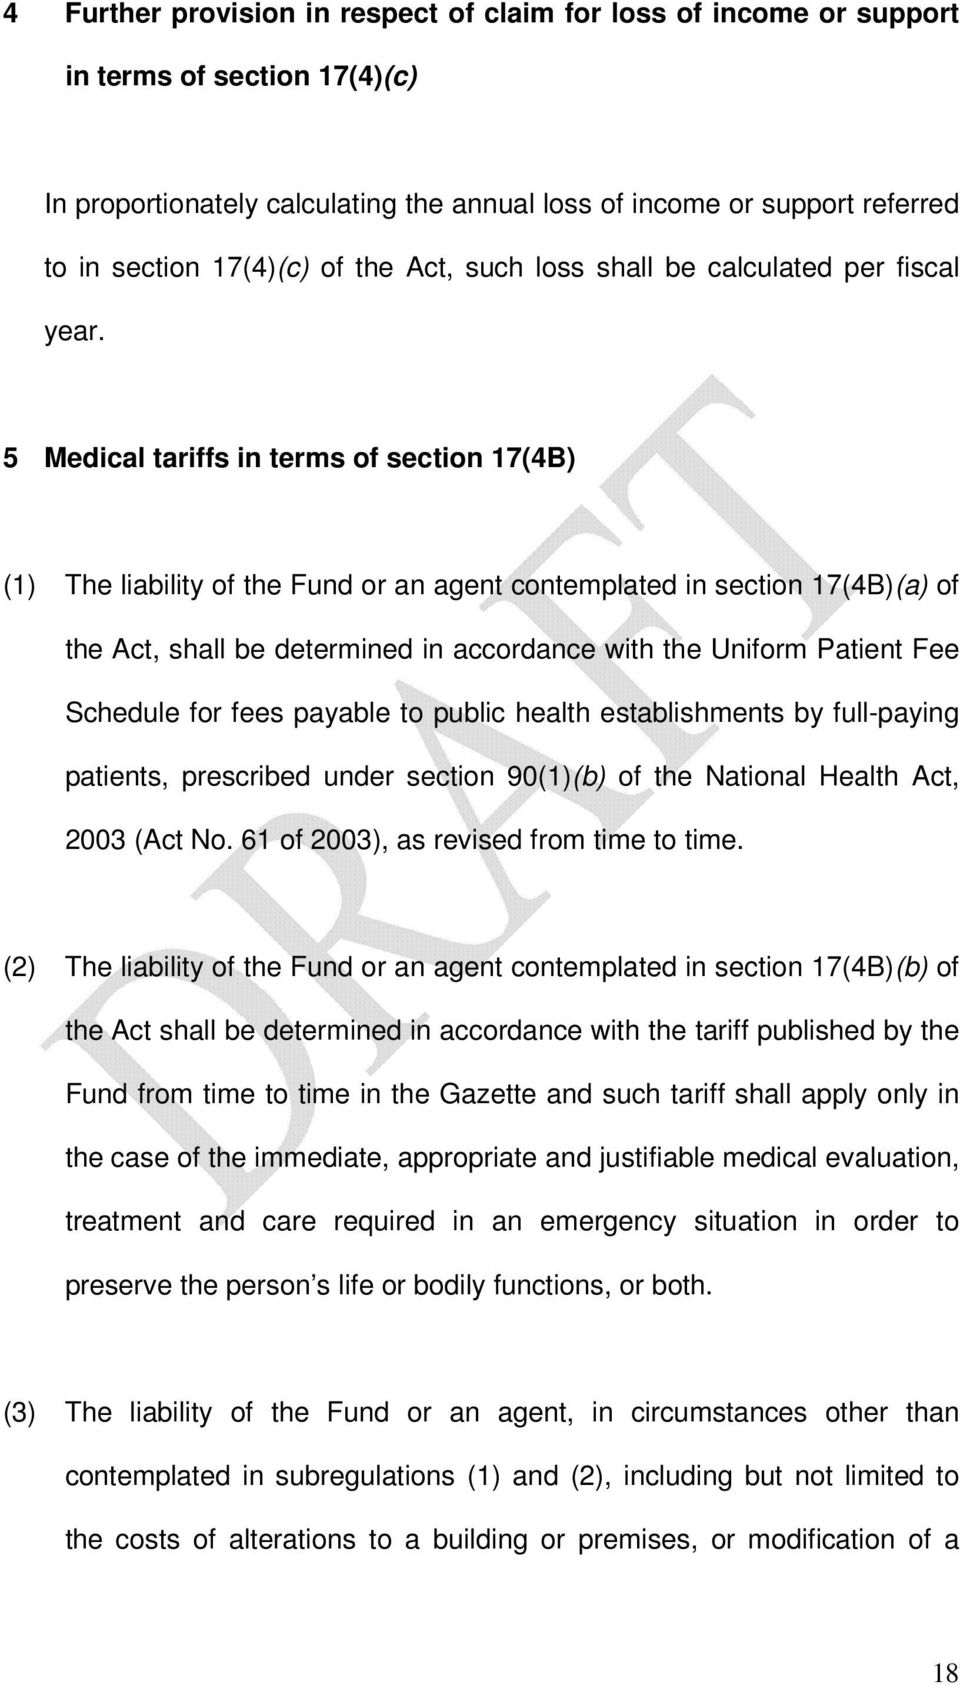 5 Medical tariffs in terms of section 17(4B) (1) The liability of the Fund or an agent contemplated in section 17(4B)(a) of the Act, shall be determined in accordance with the Uniform Patient Fee